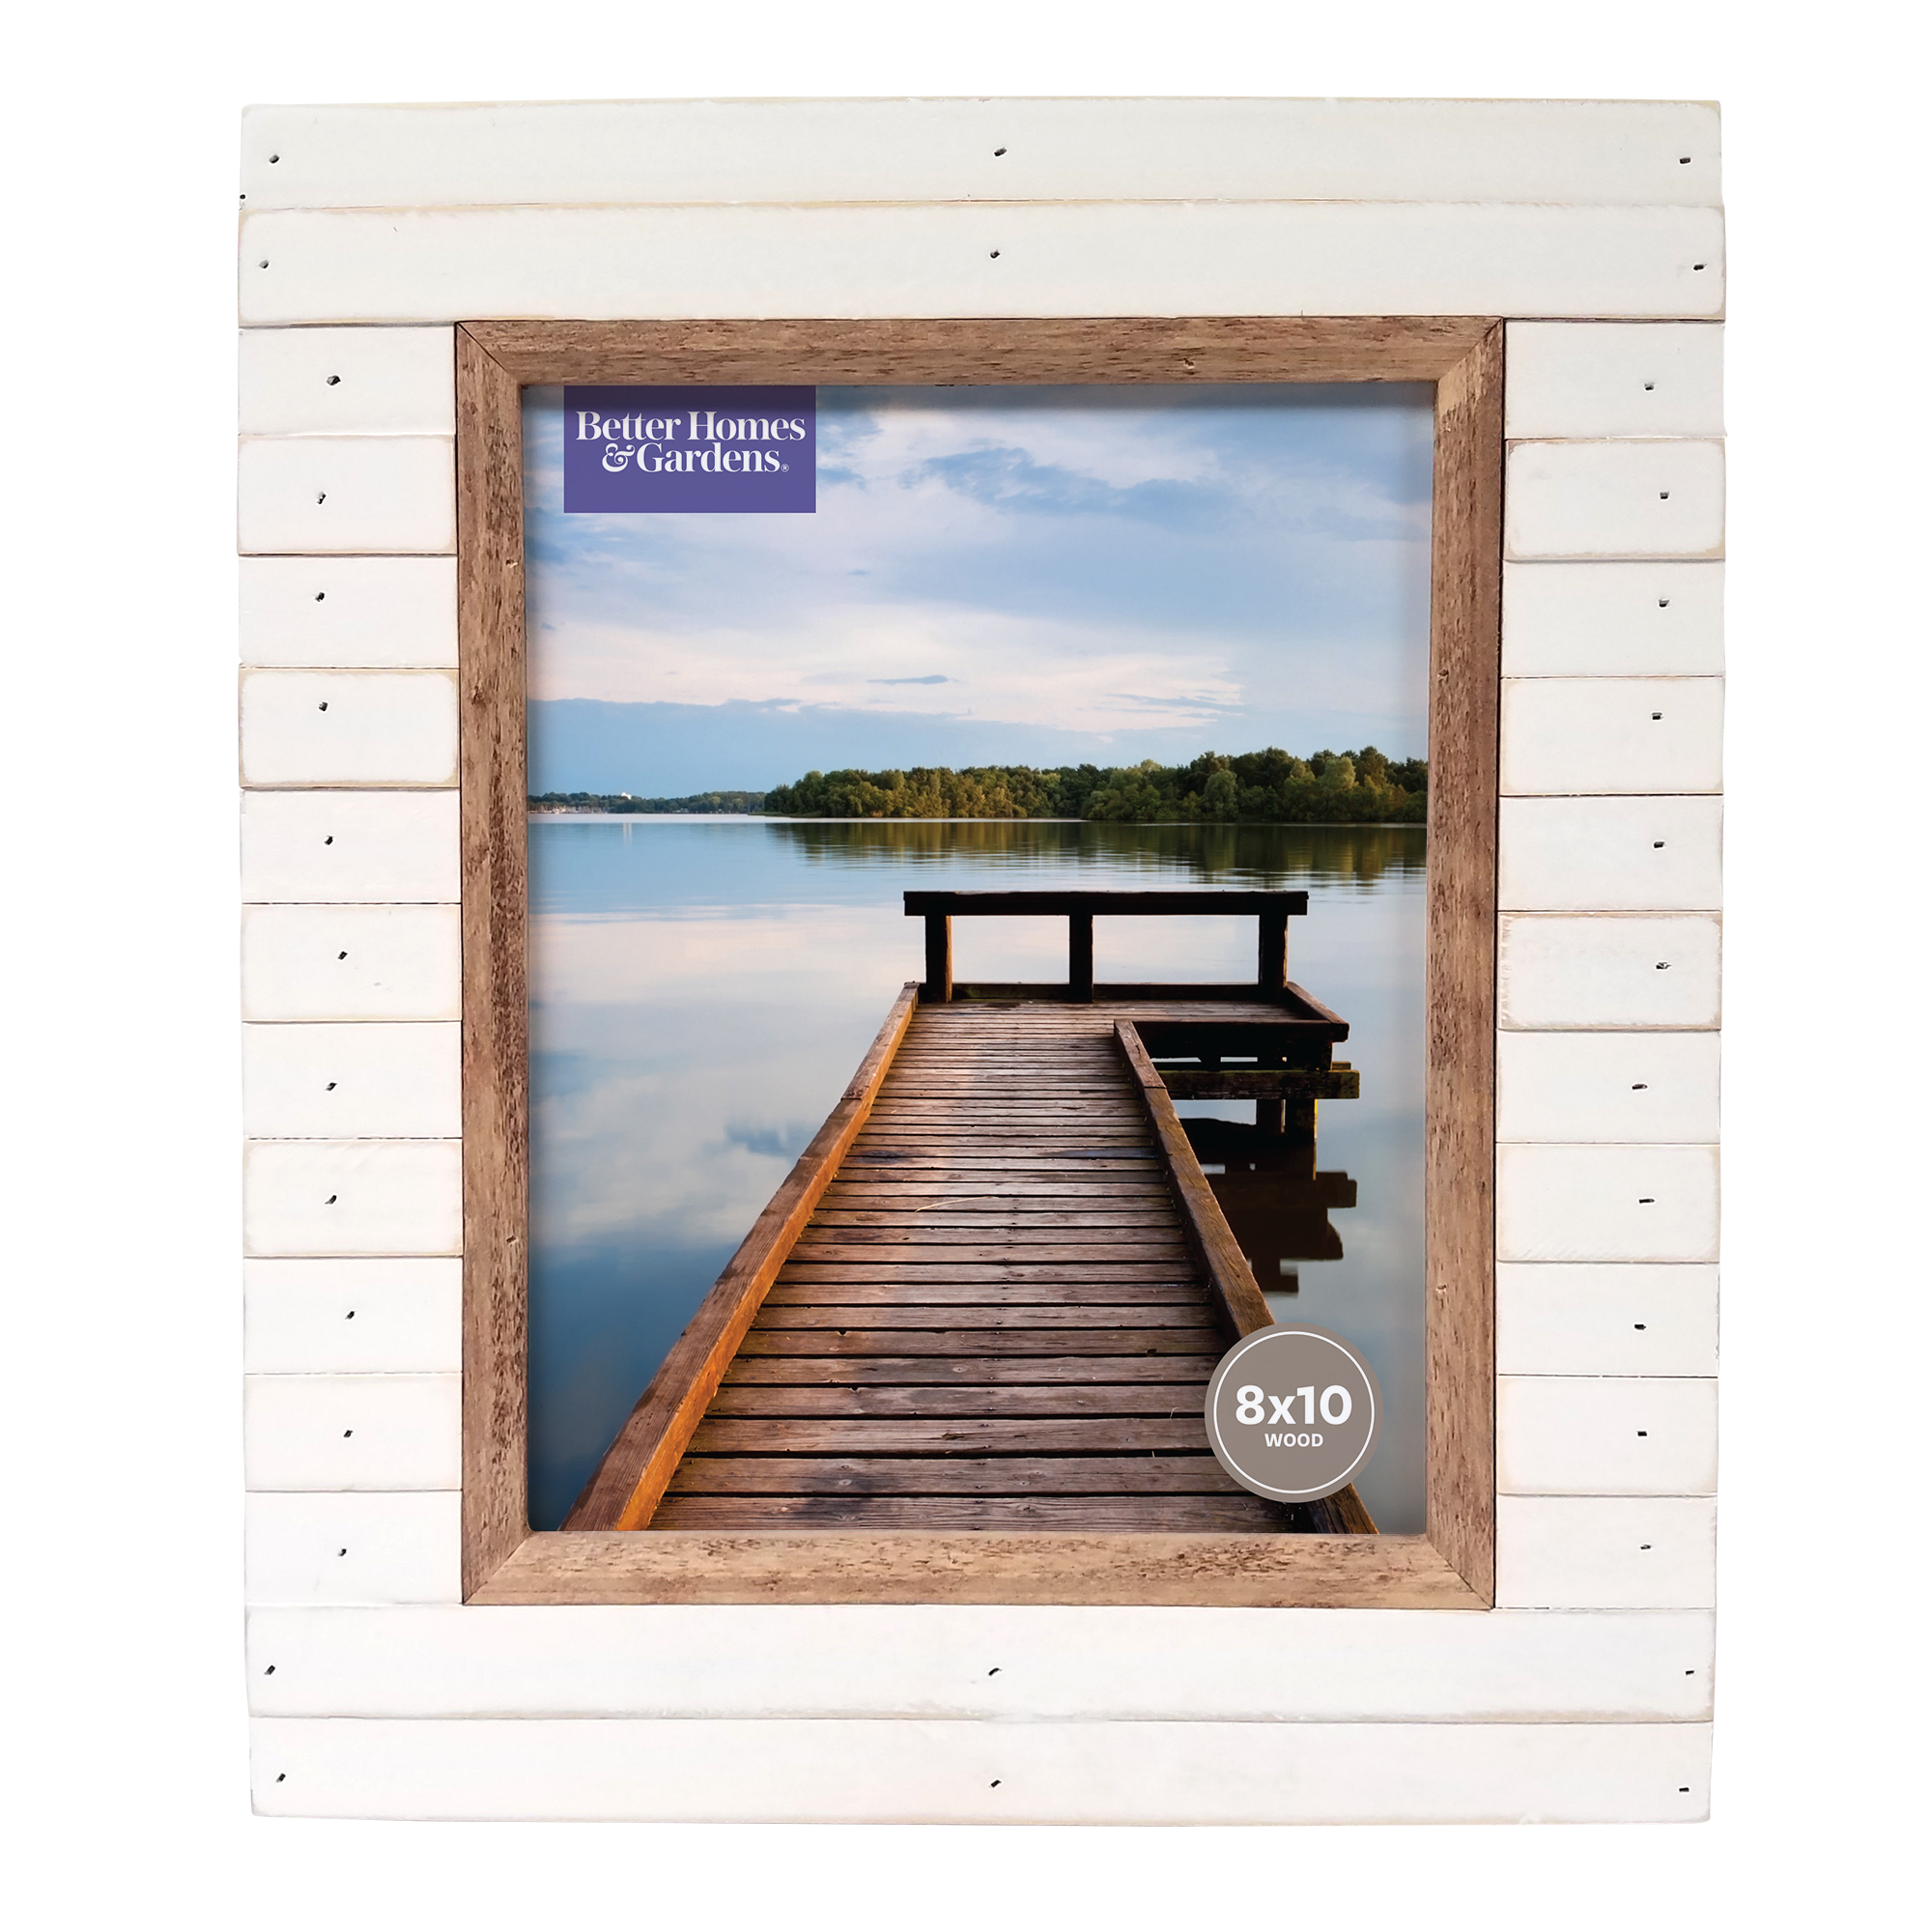 Better Homes and Gardens Oracoke 8x10 Frame, Cream